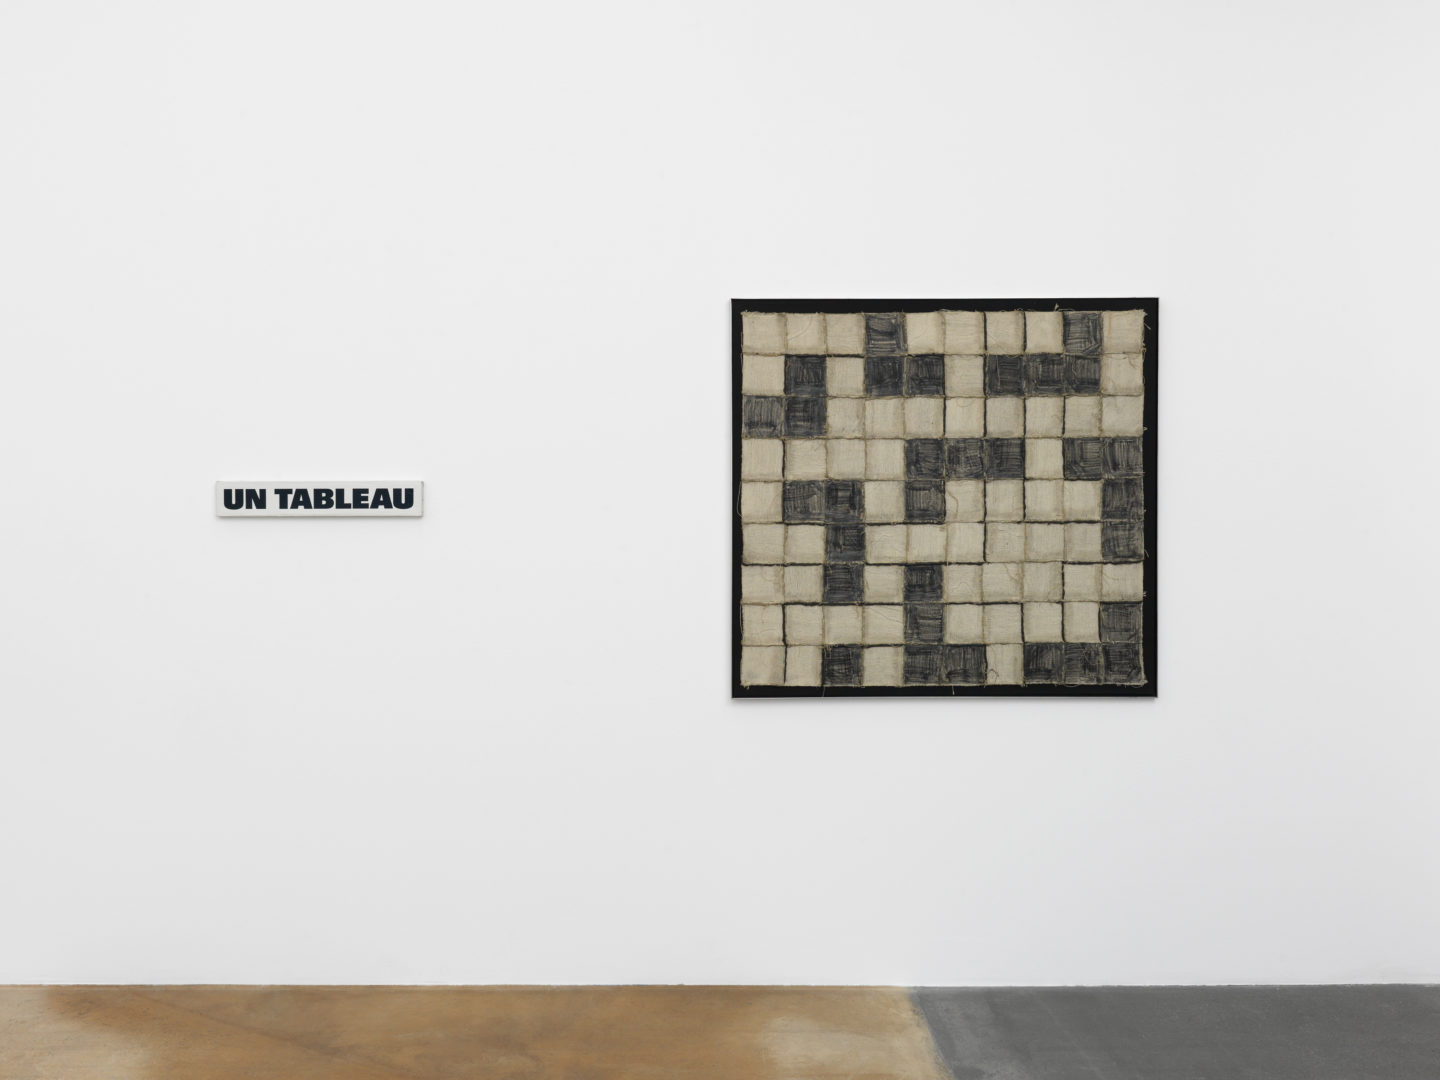 """Exhibition view """"Nouvelles Images"""" at MAMCO Geneva / Photo: Annik Wetter / Courtesy: the artist and Mamco"""